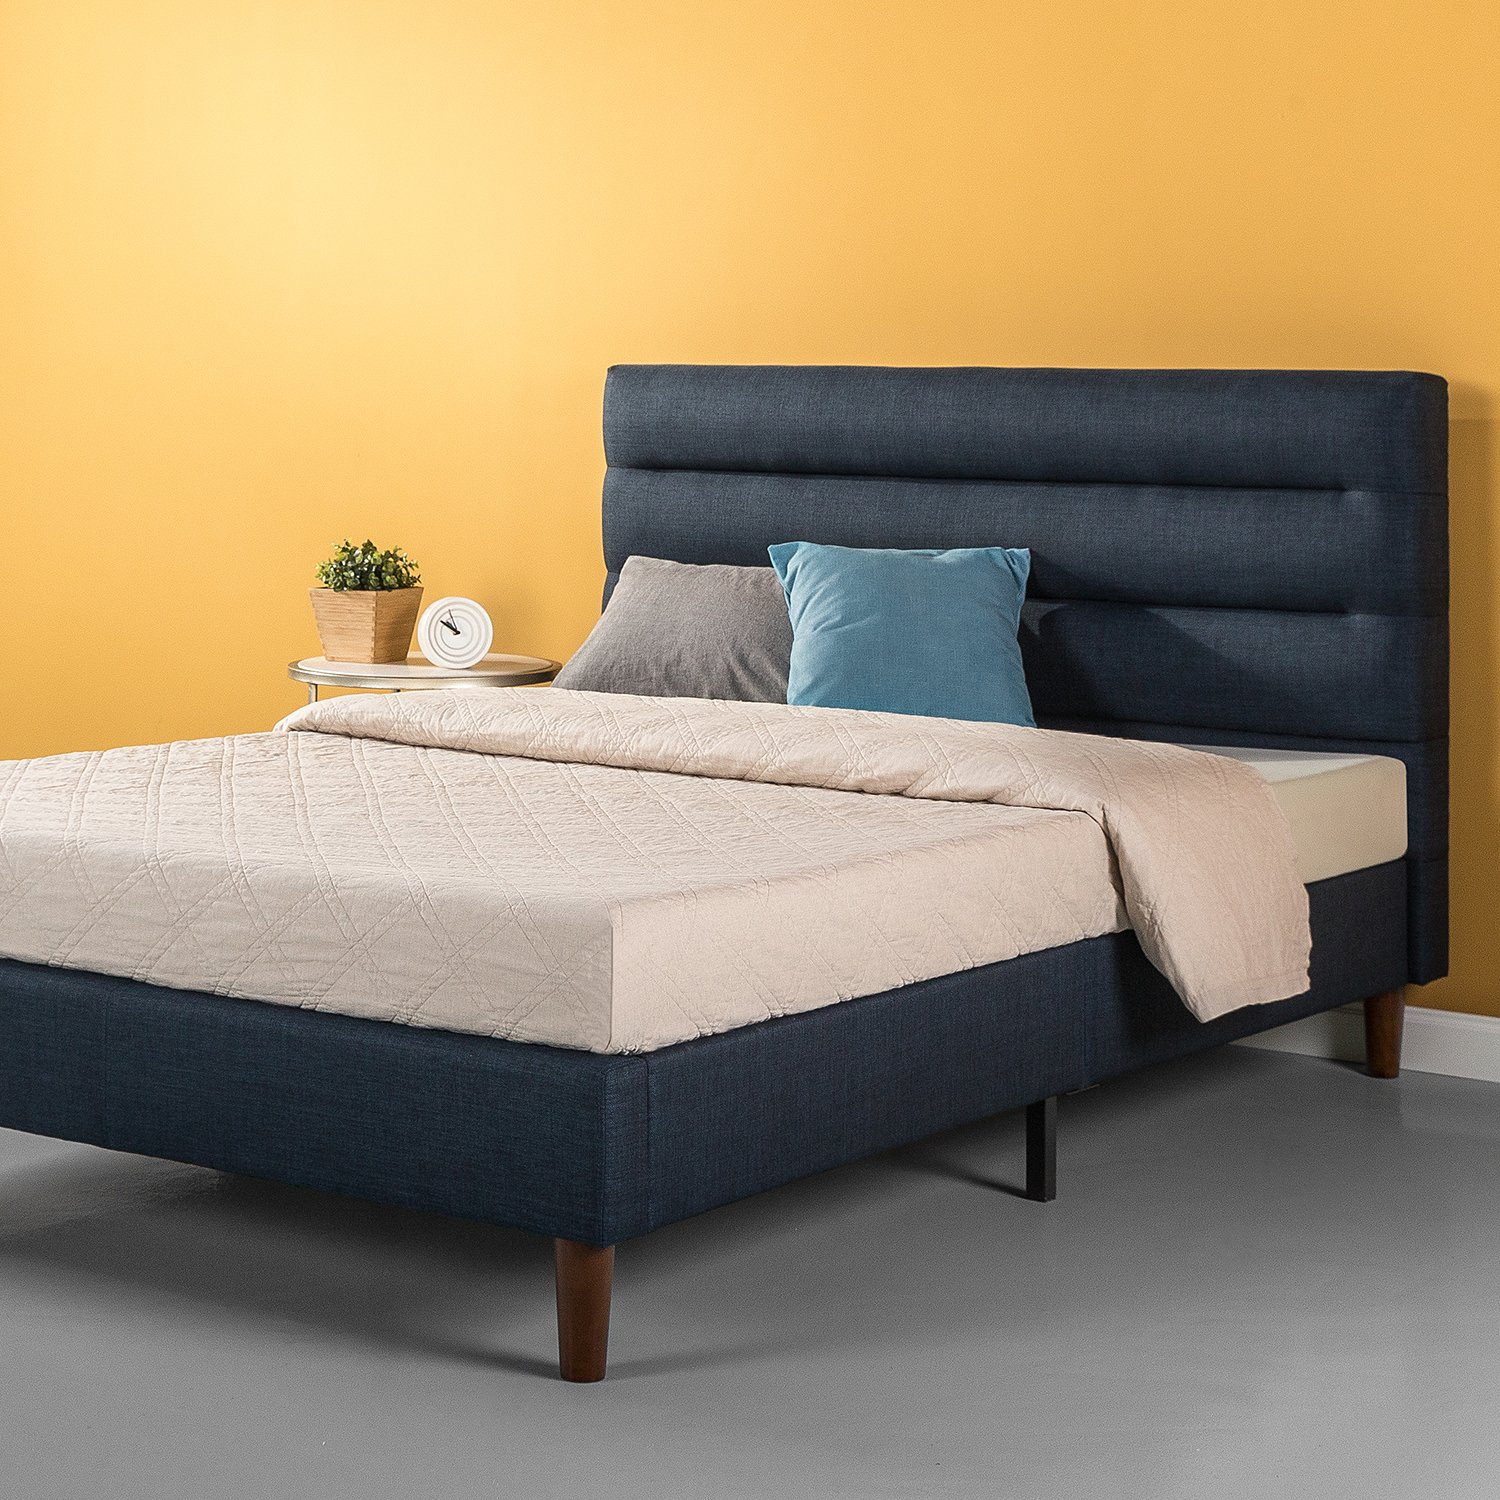 Zinus Upholstered Horizontally Cushioned Platform Bed Mattress Foundation Easy Assembly Strong Wood Slat Support Navy, Queen